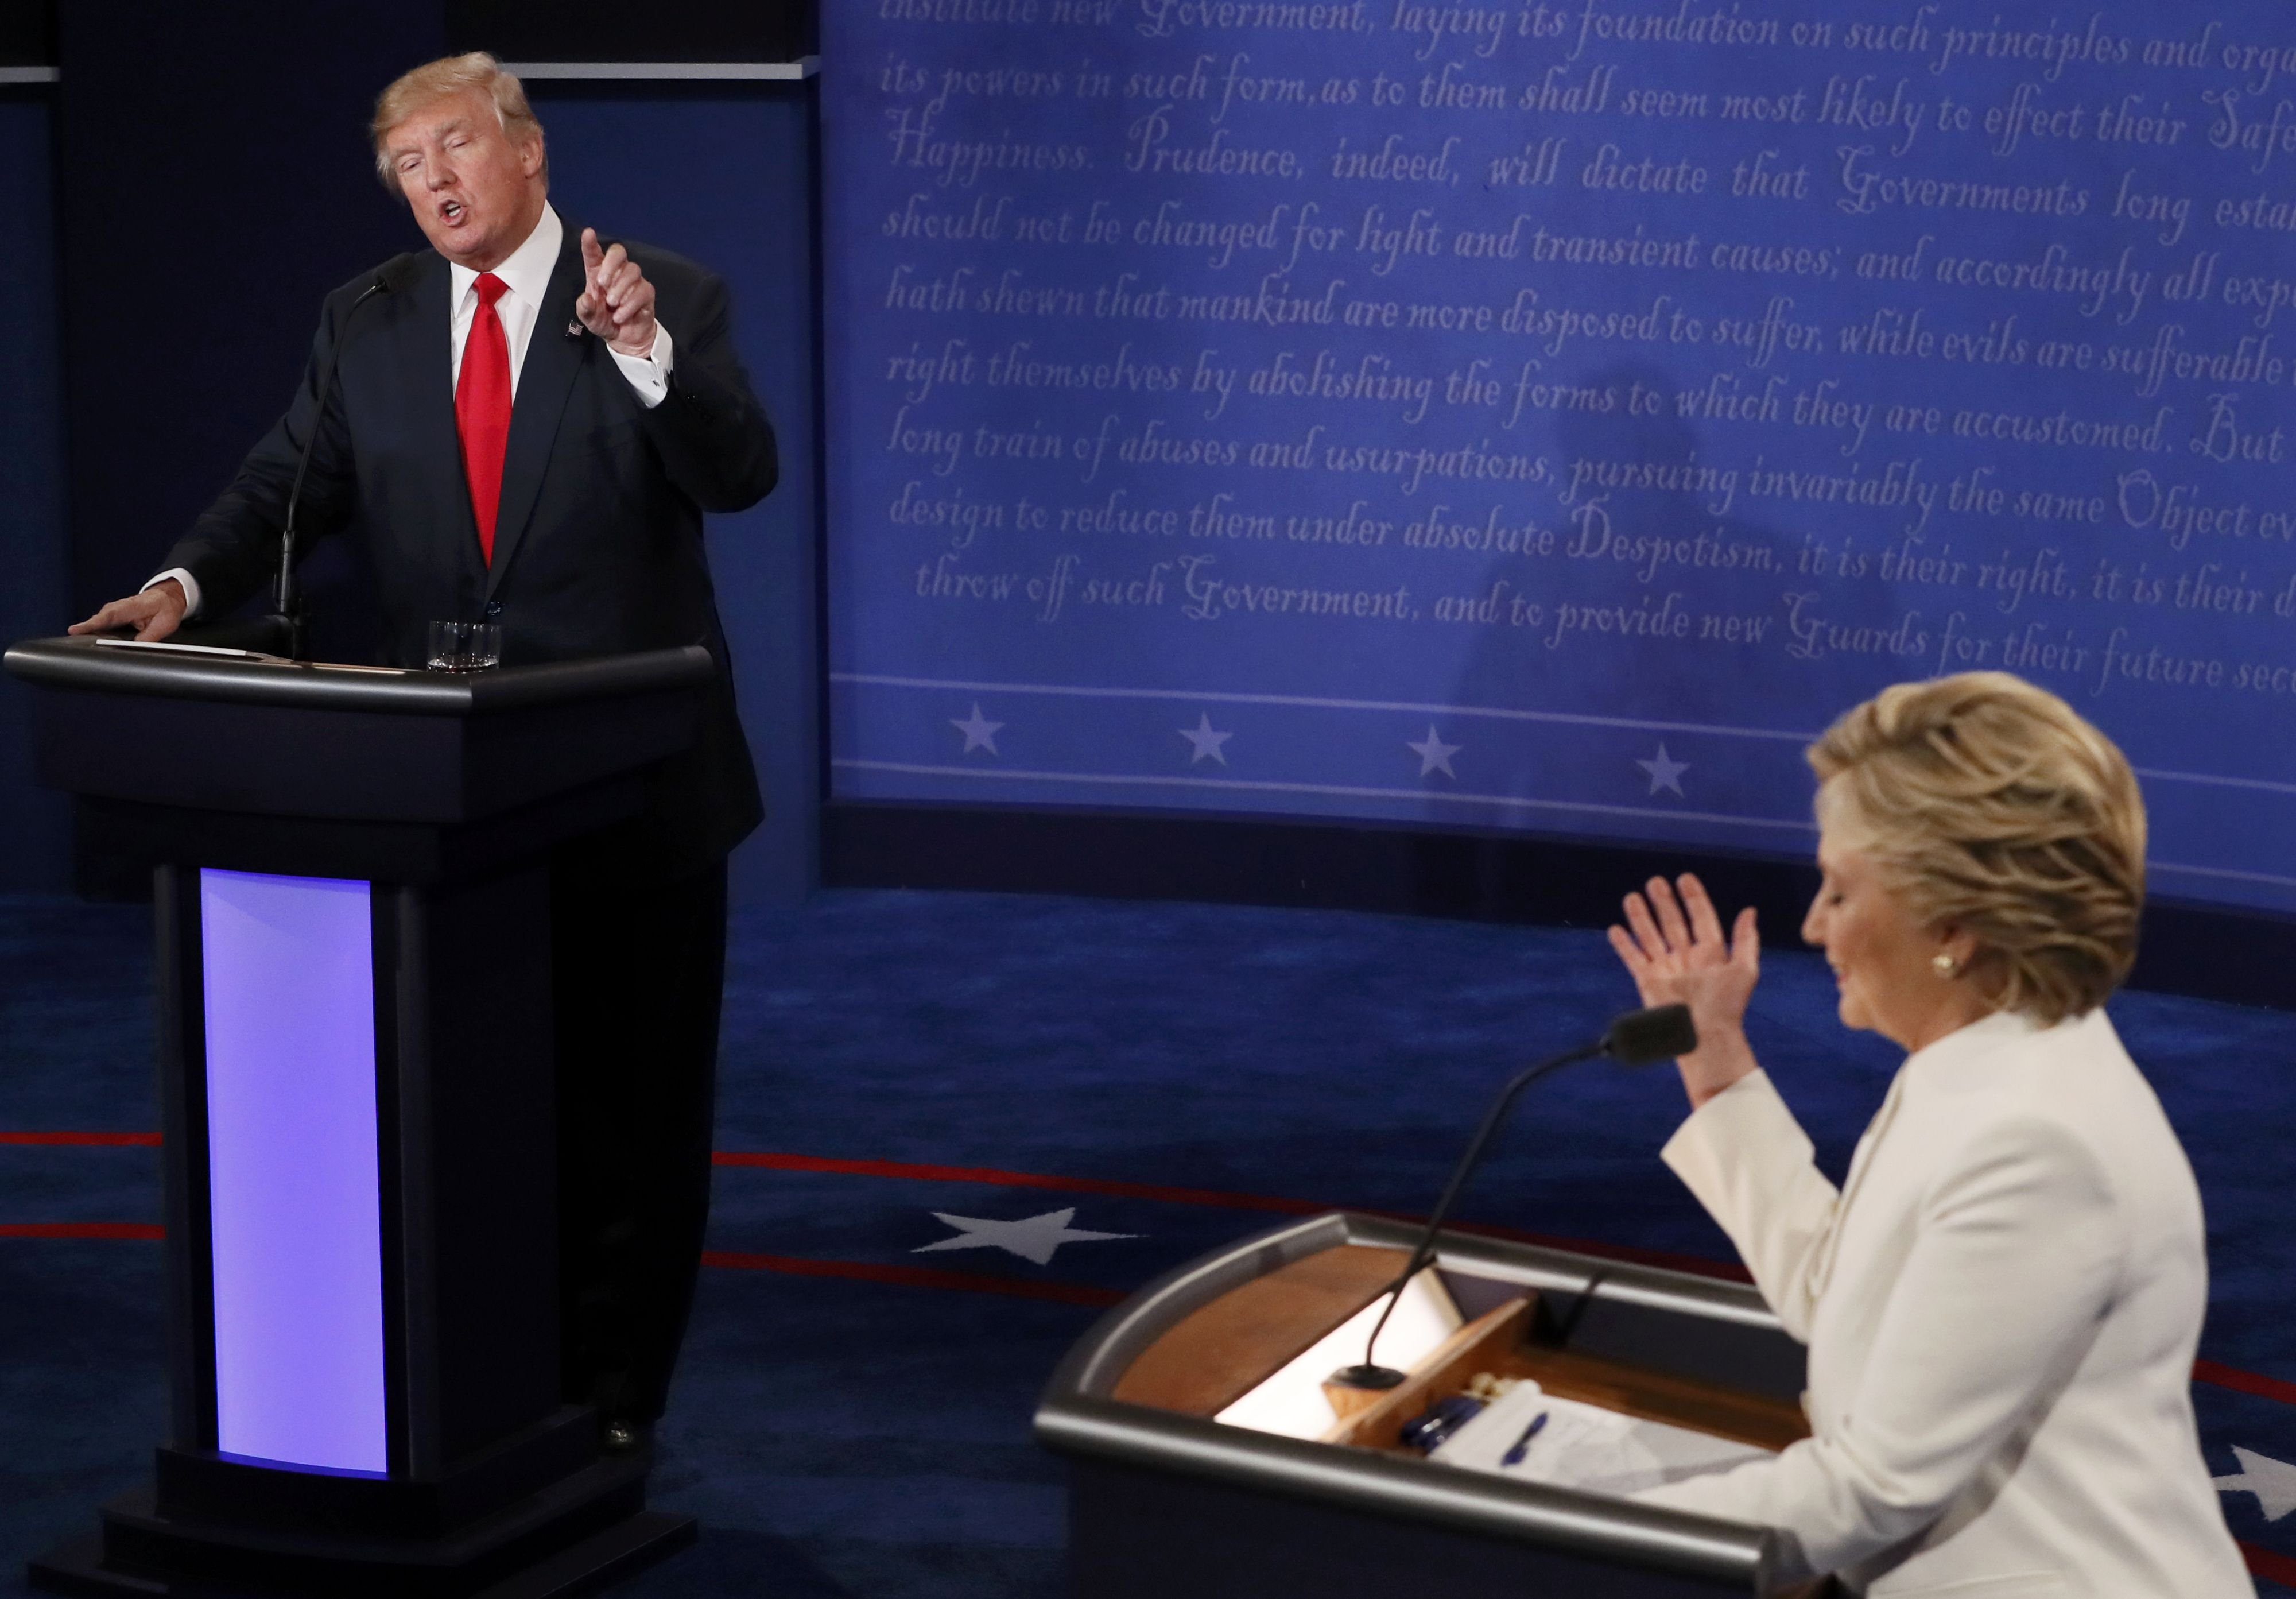 Presidential nominees Donald Trump and Hillary Clinton debate in Las Vegas on Oct. 19, 2016.